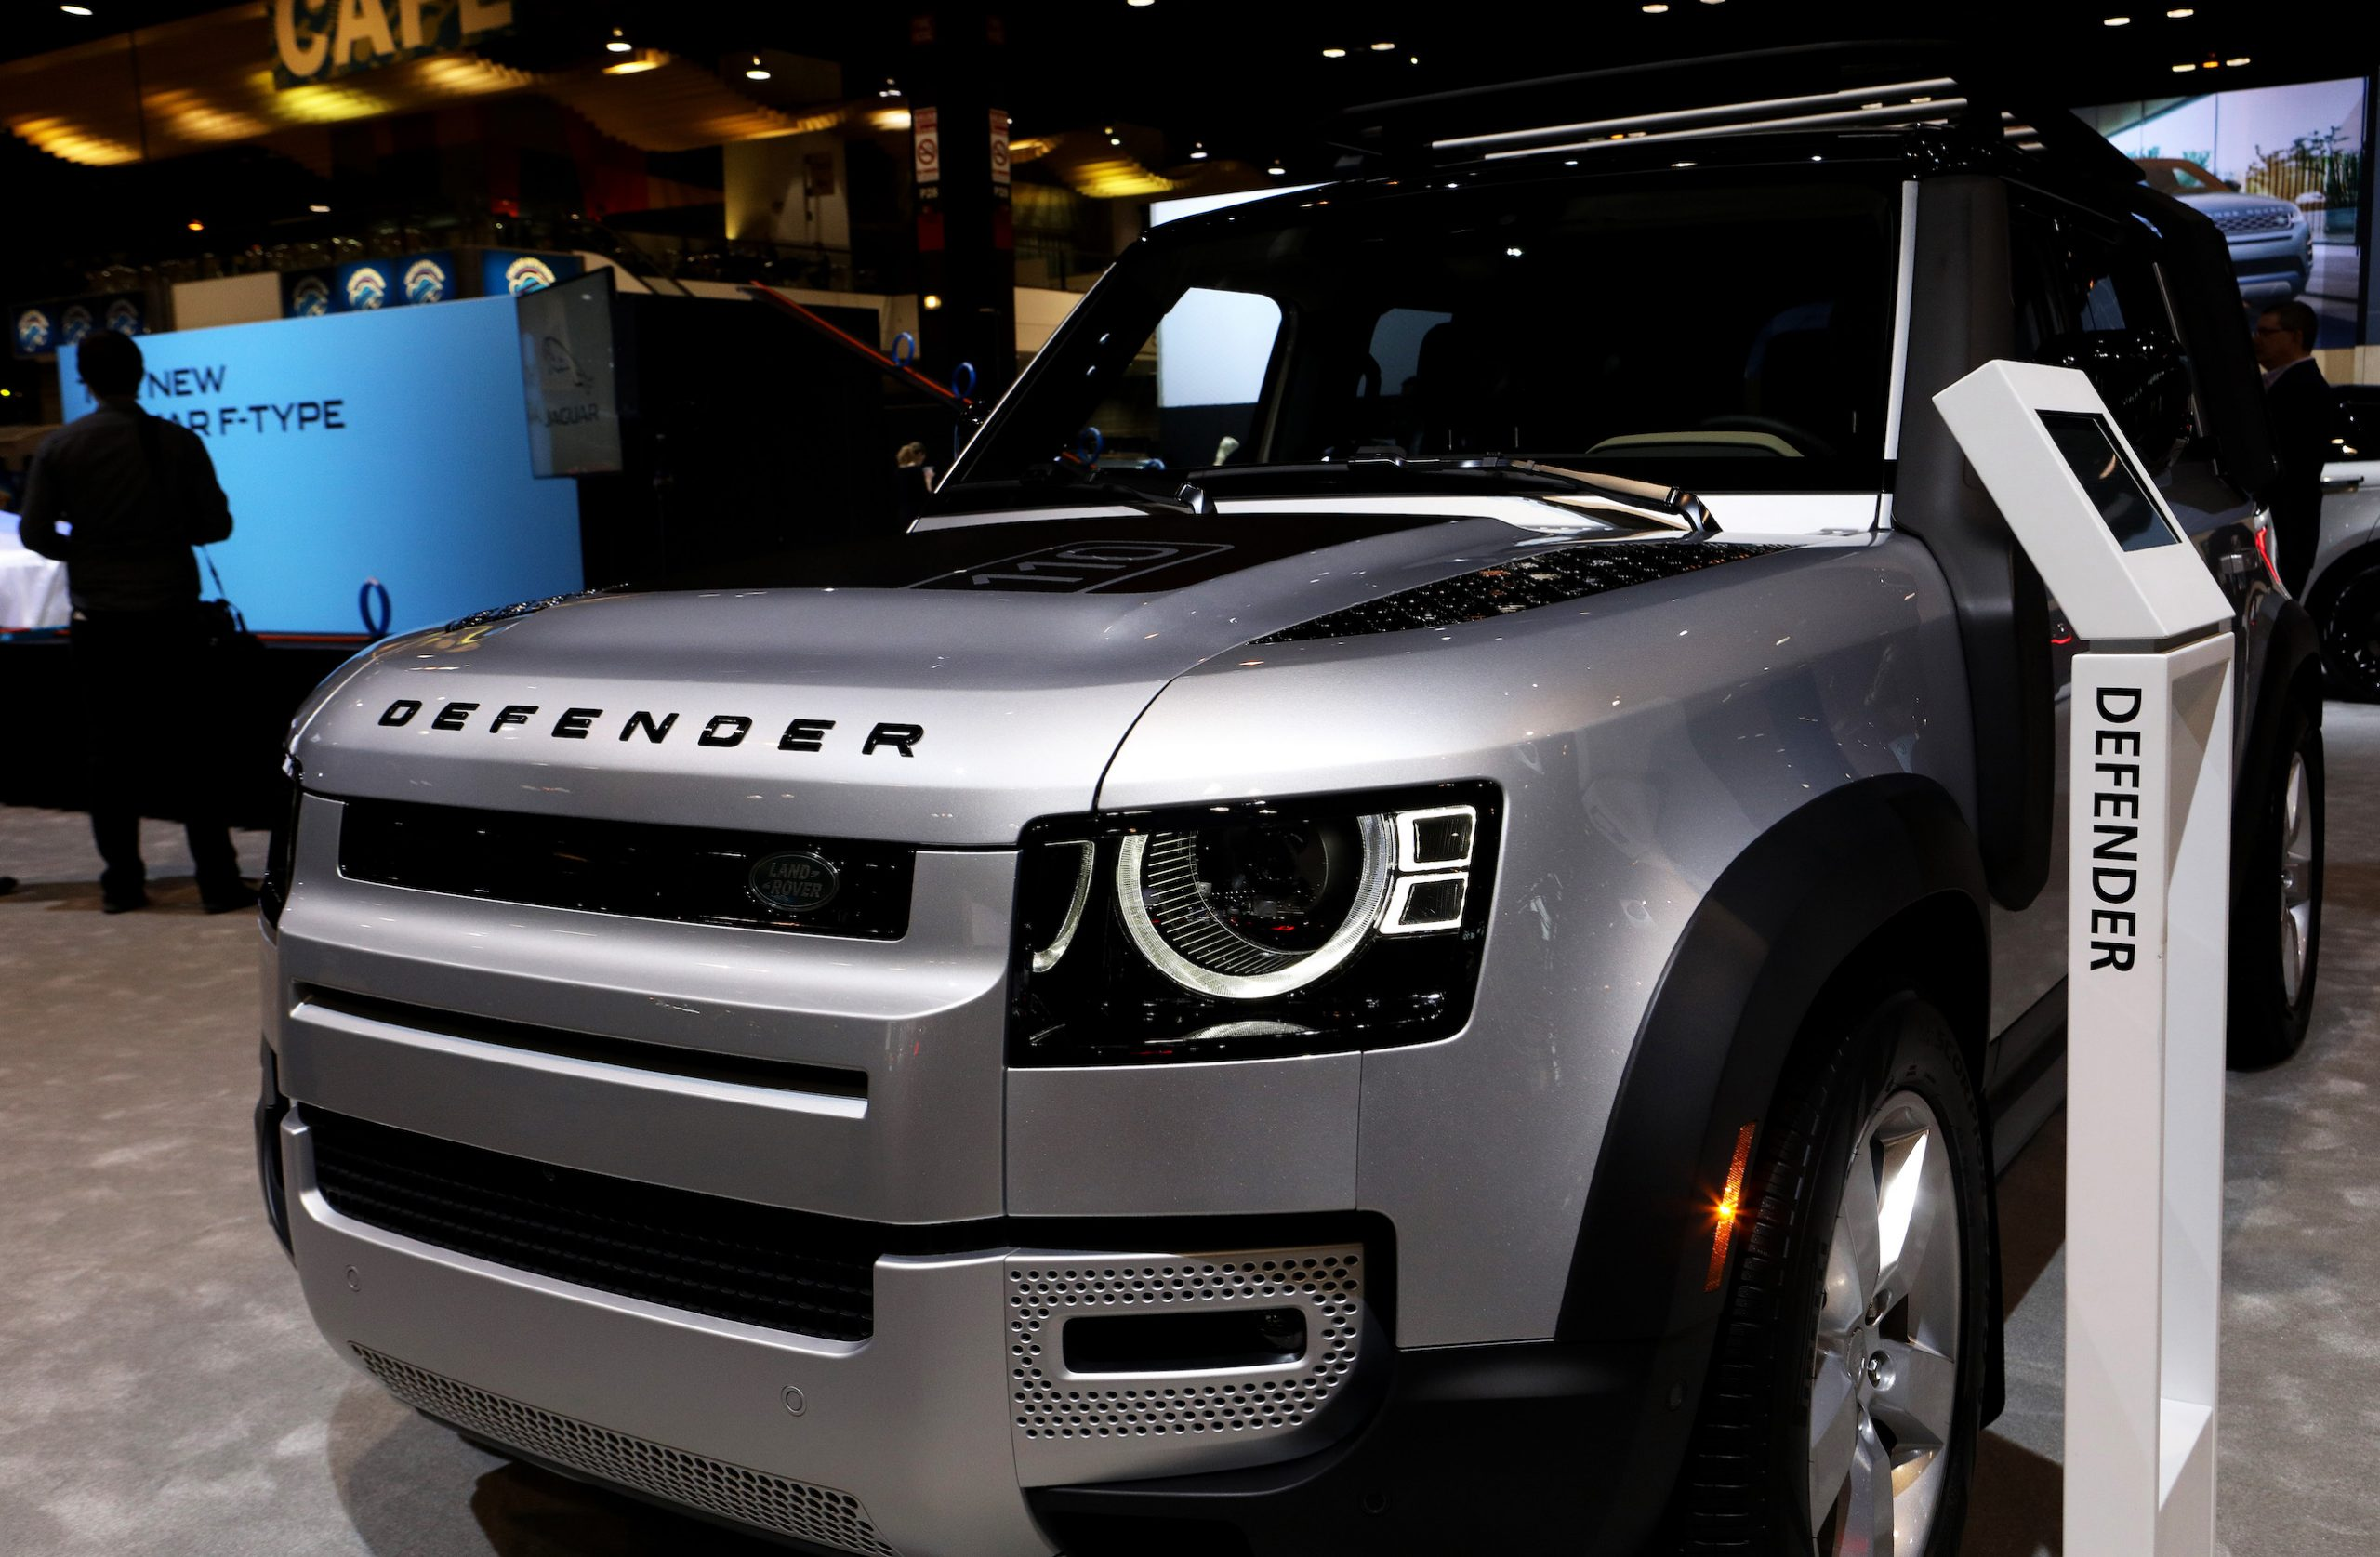 2021 Is Already a Better Year for the Land Rover Defender